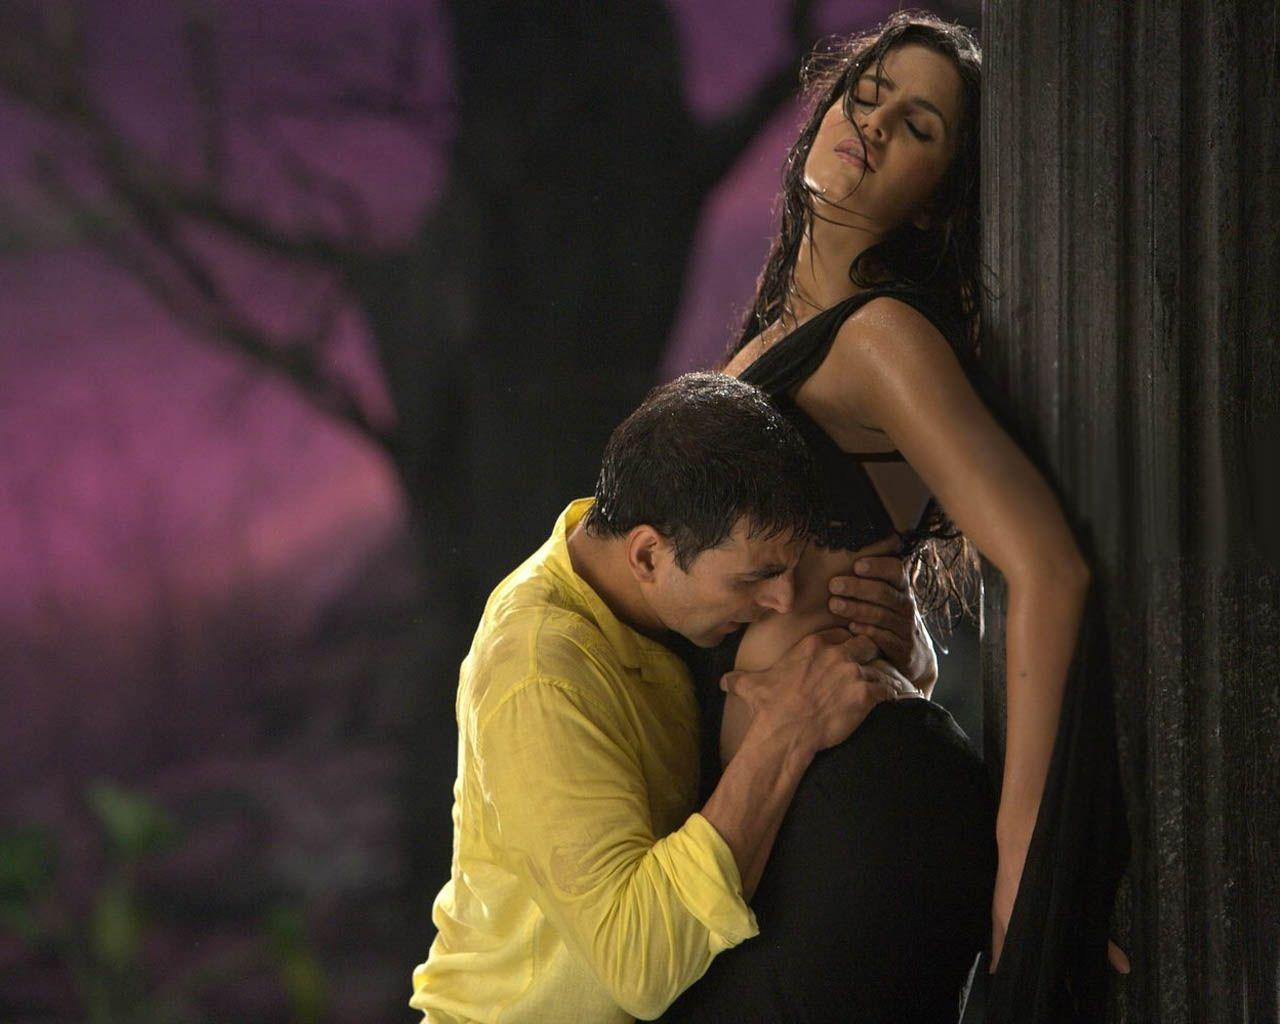 Whipping scenes in mainstream movies-9924